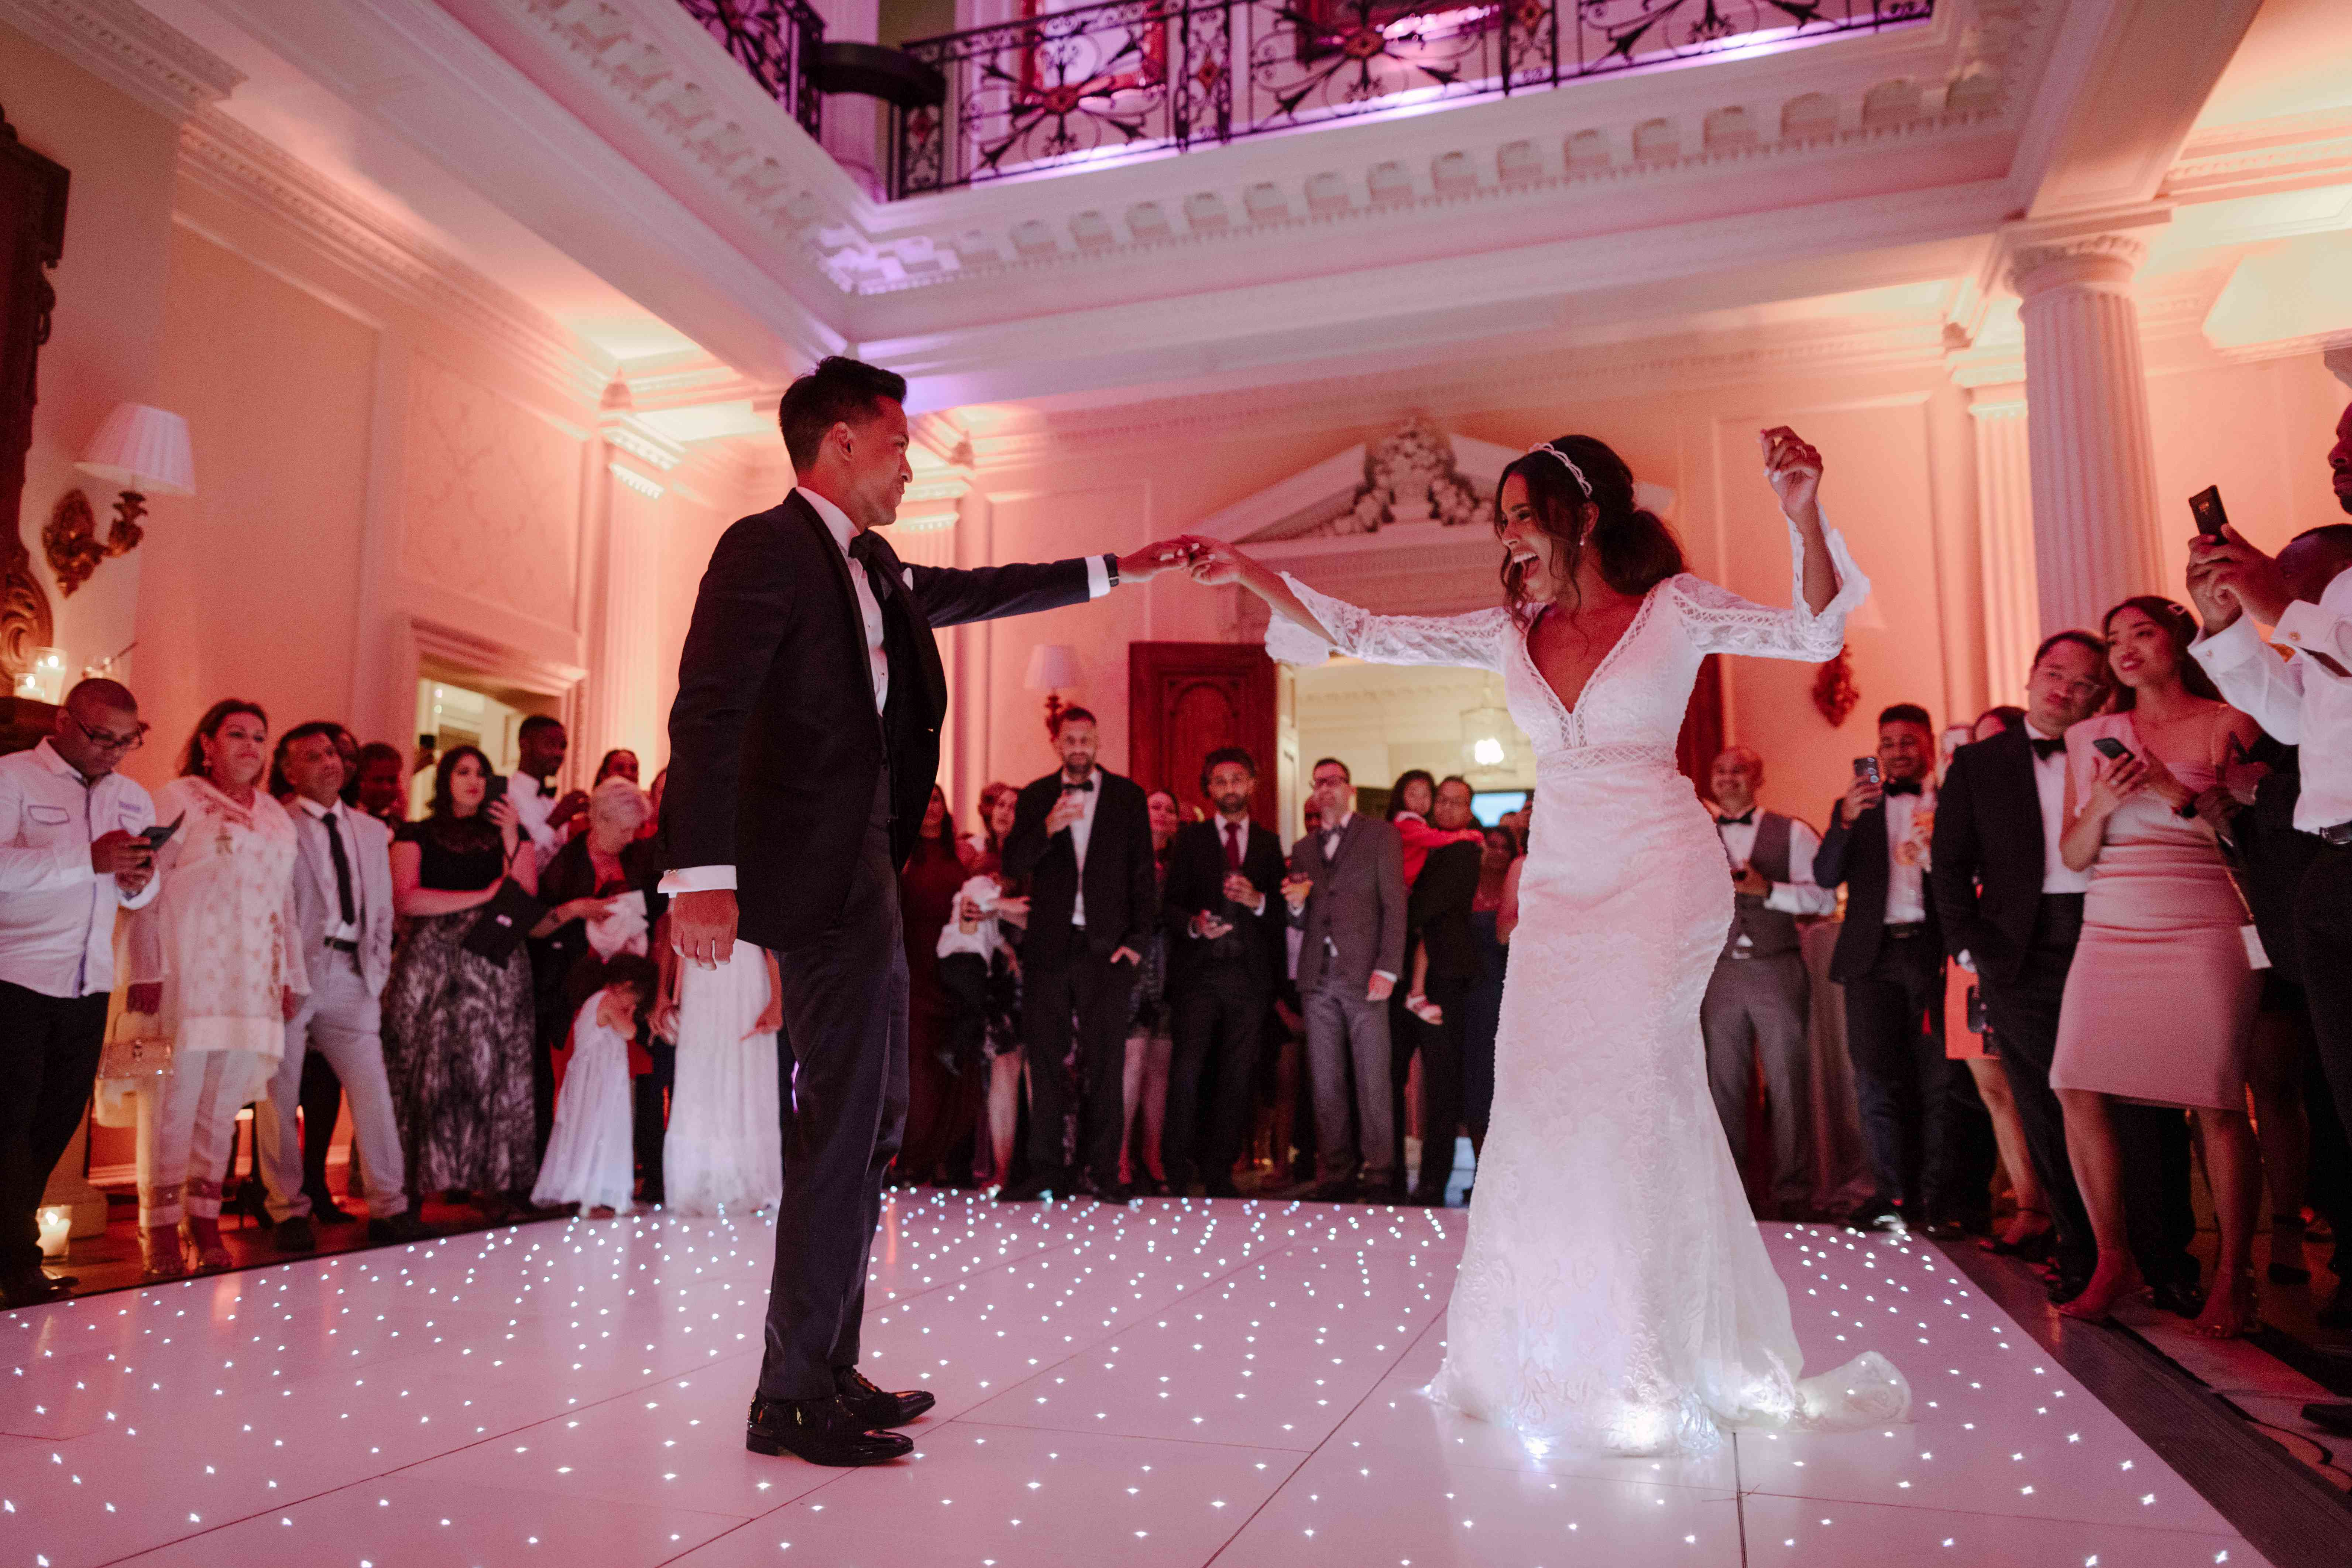 The bride and groom first dance